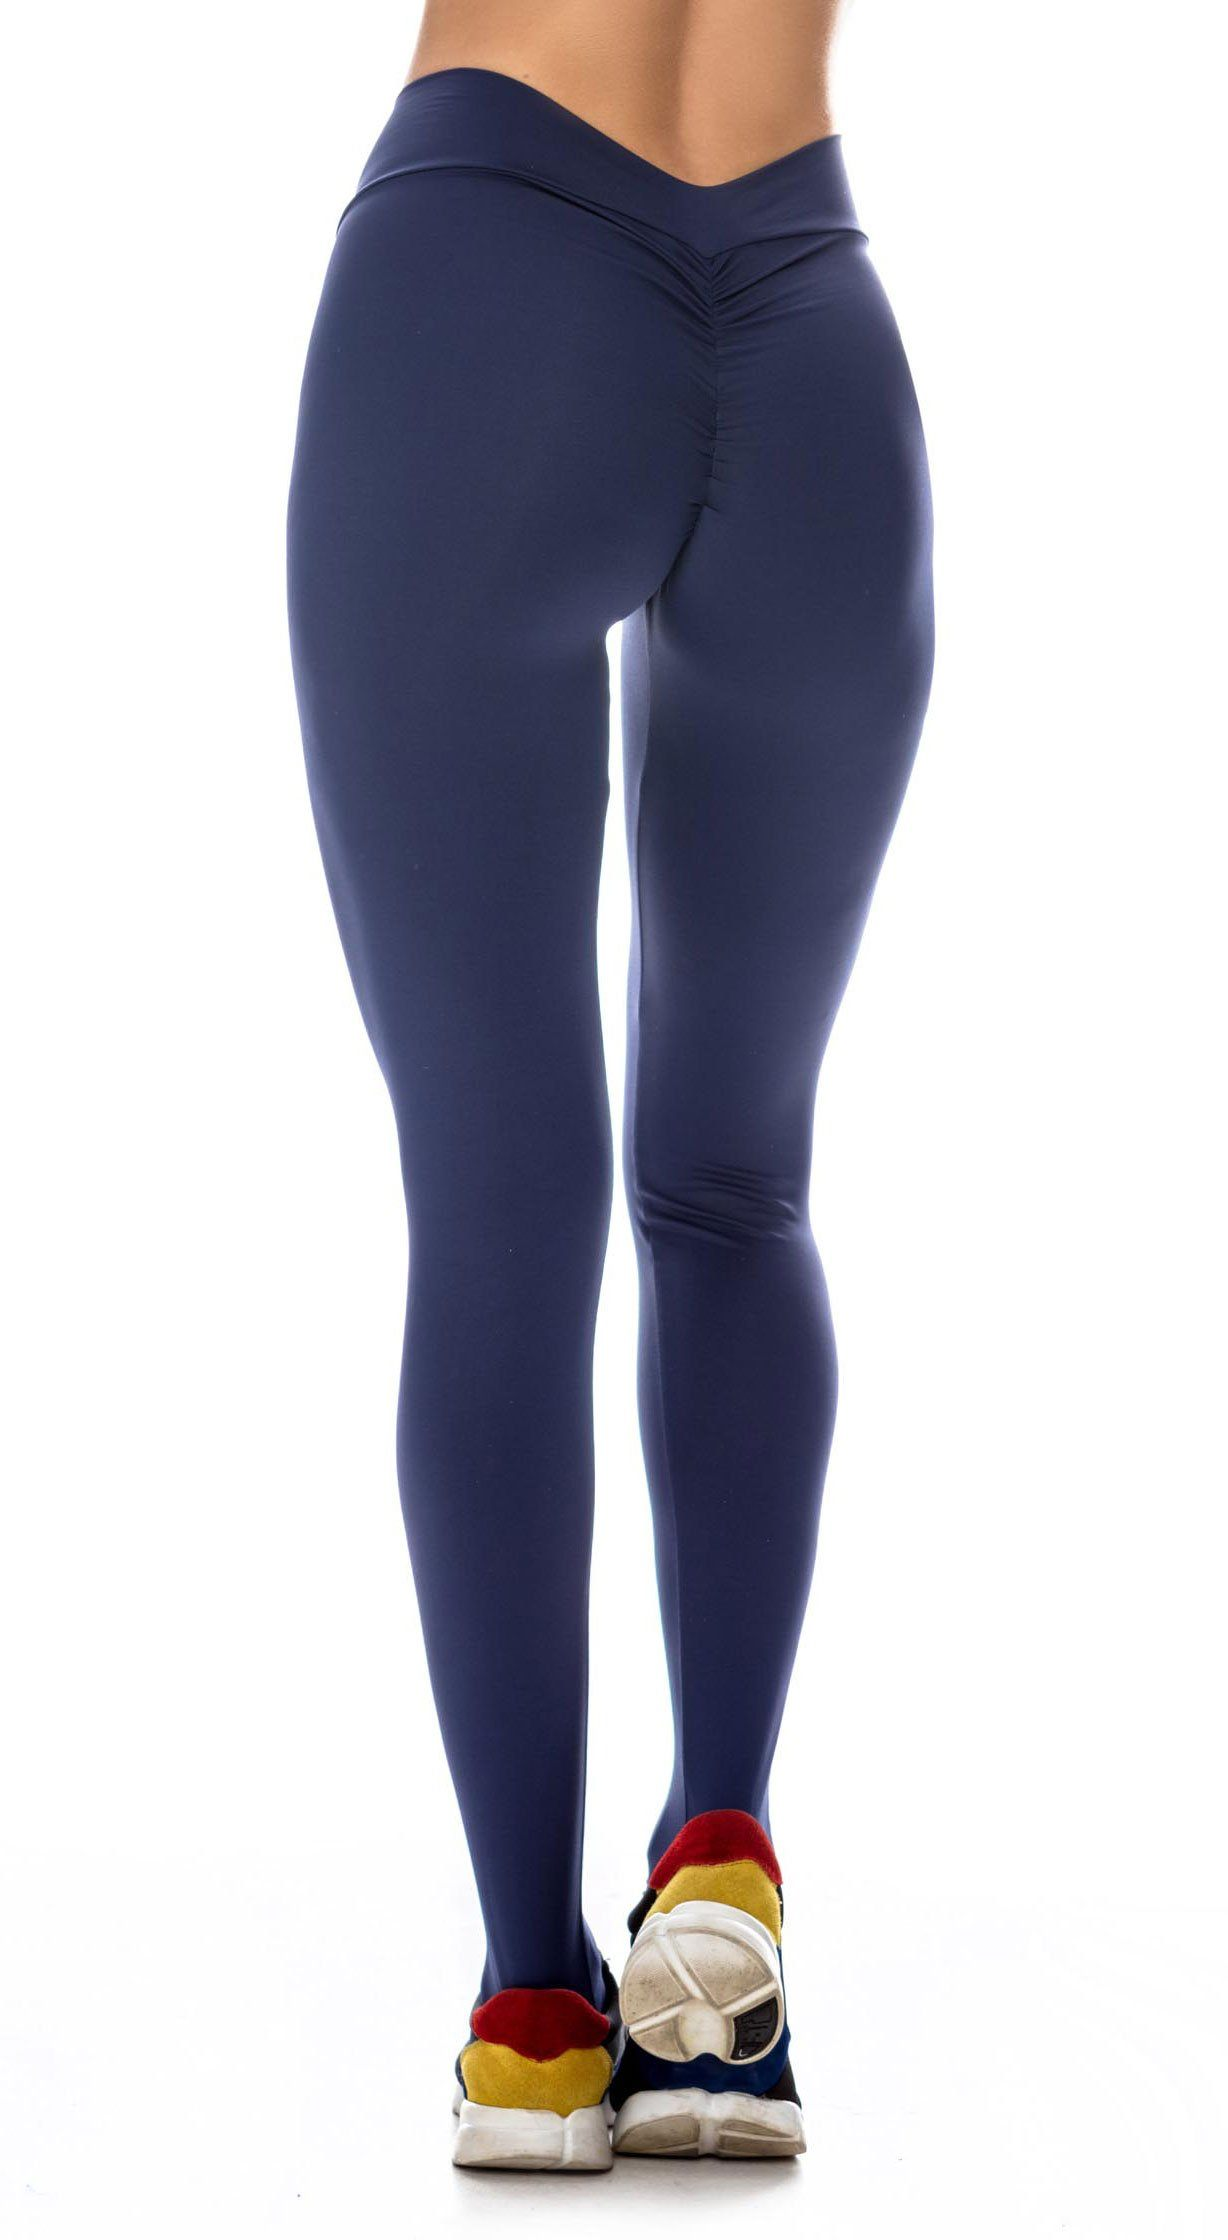 Brazilian Workout Legging - Scrunch Booty Lift! Compression Navy